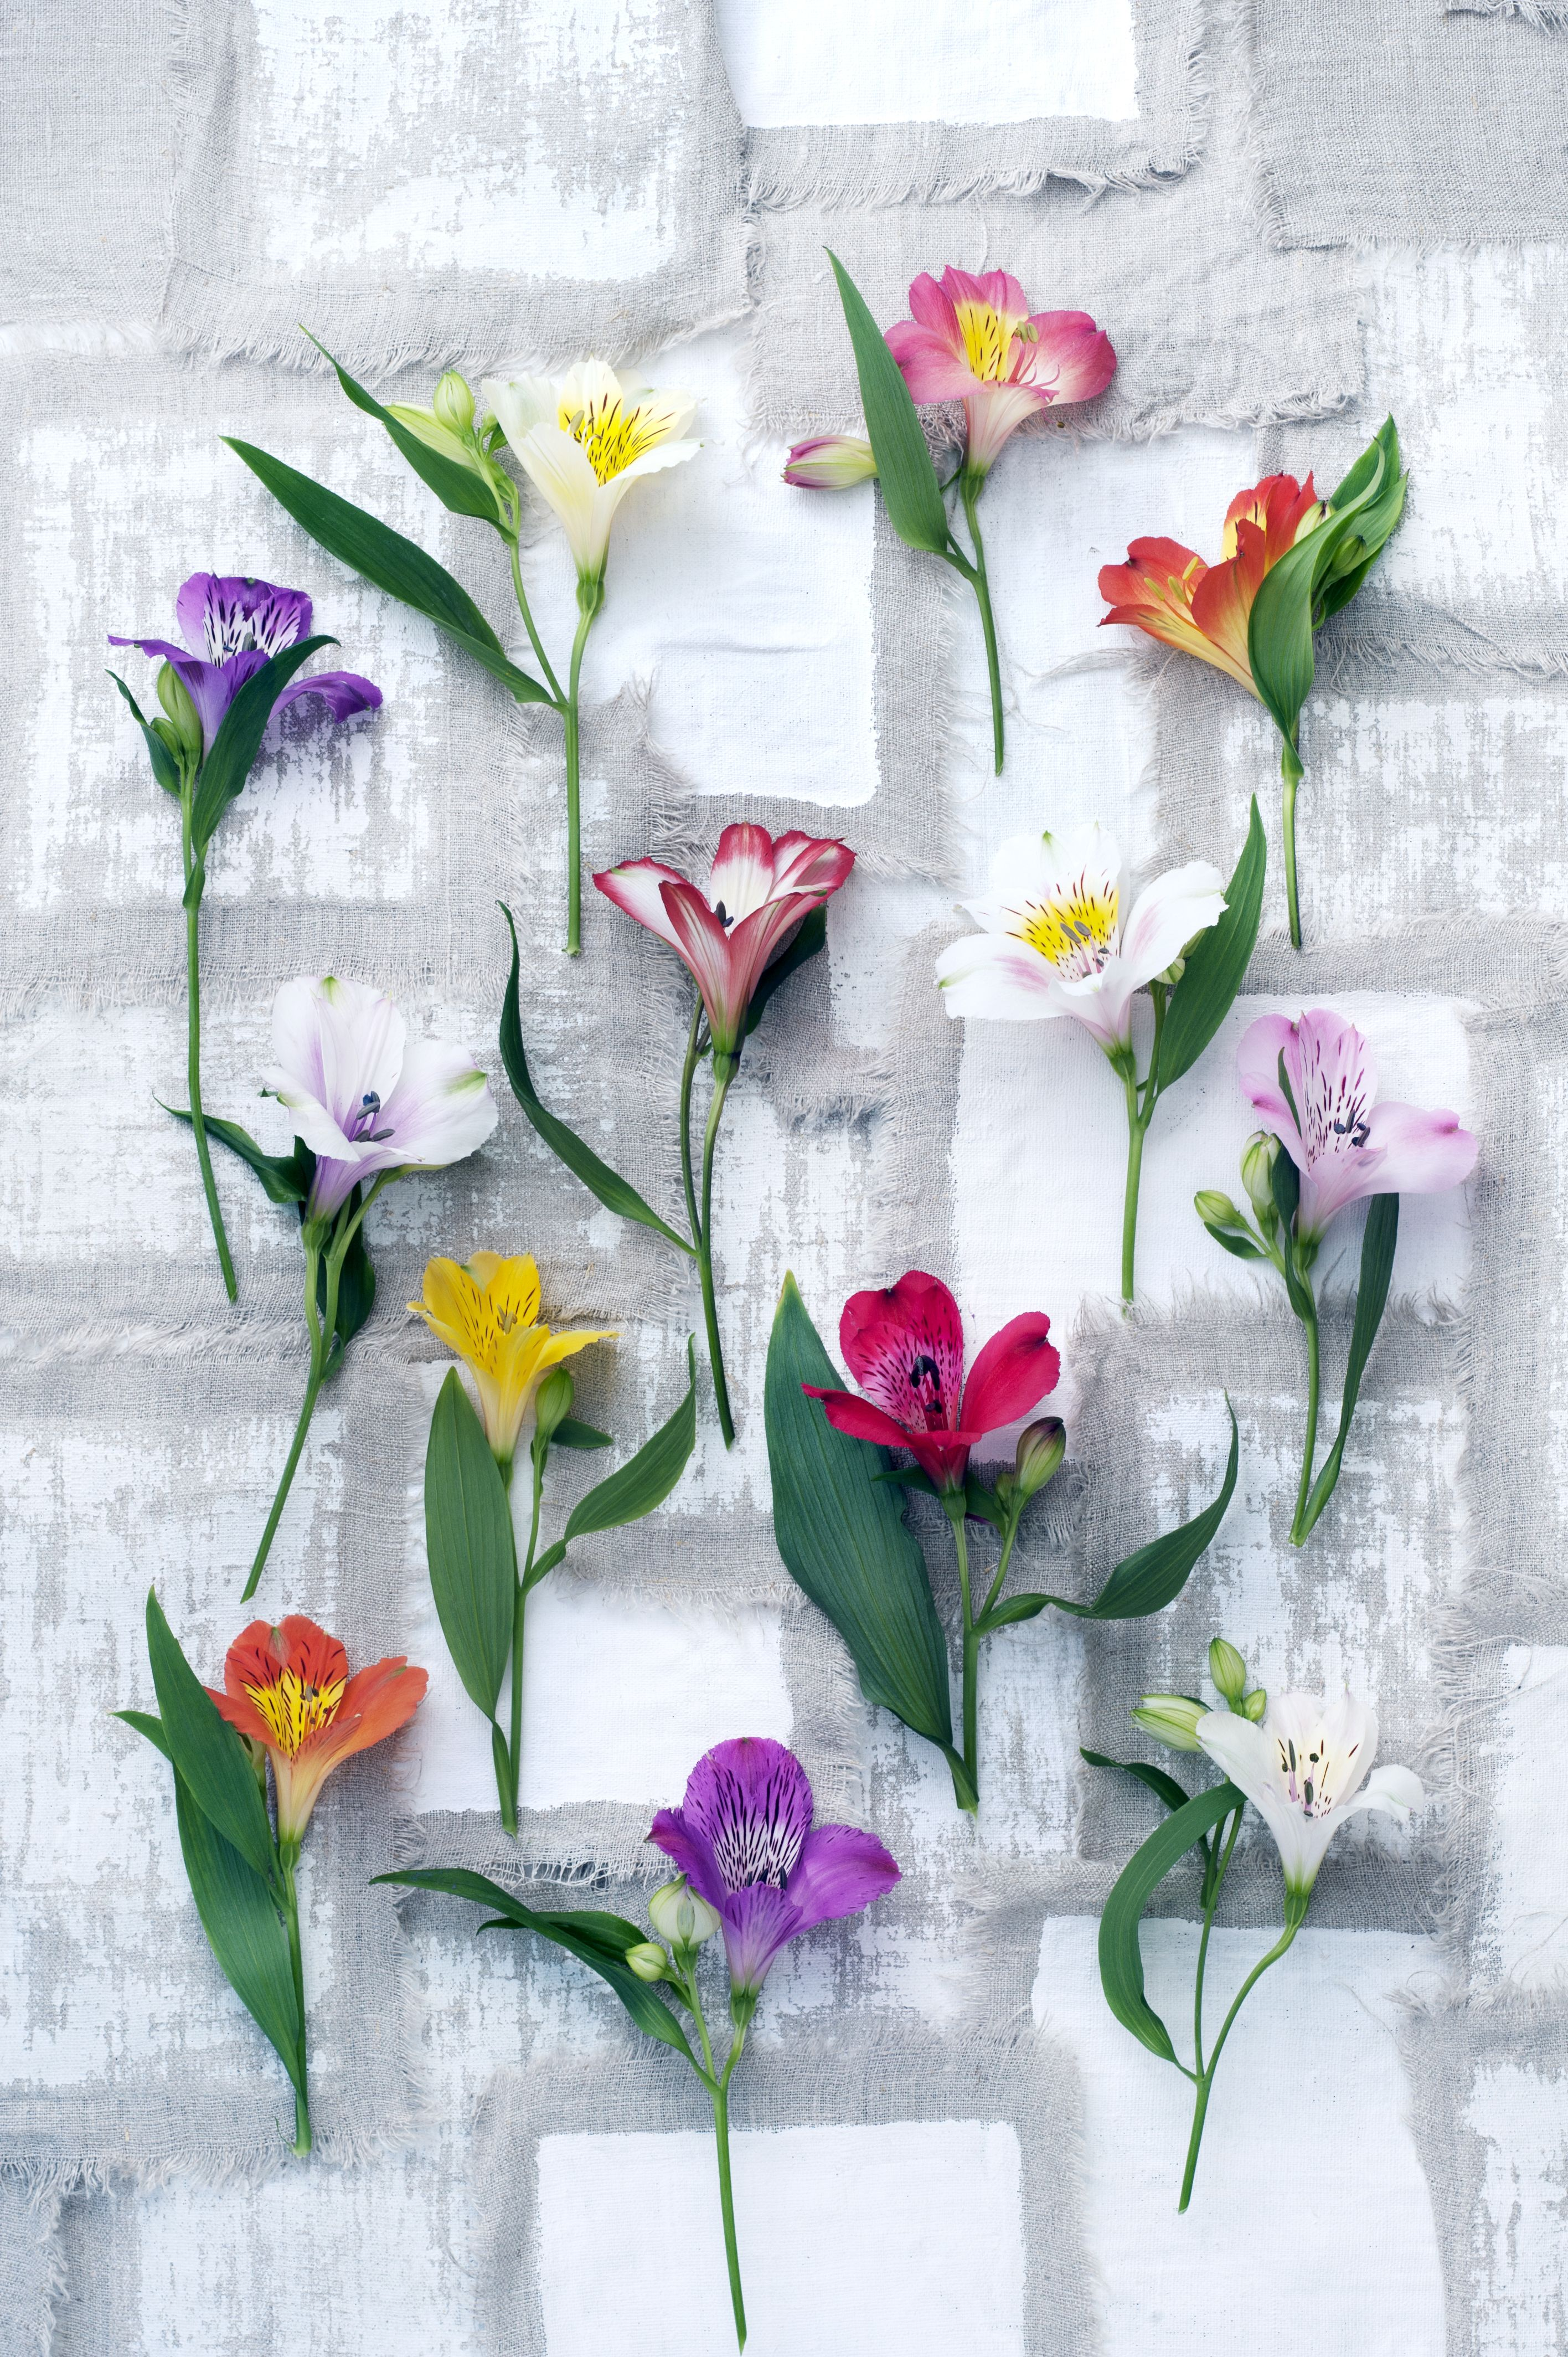 Twisted Foliage And Beautiful Brightly Coloured Flowers Those Are The Characteristics Of The Alstroemeria It Symbolised Friendship And Th Flowers Peruvian Lilies Spring Flowers